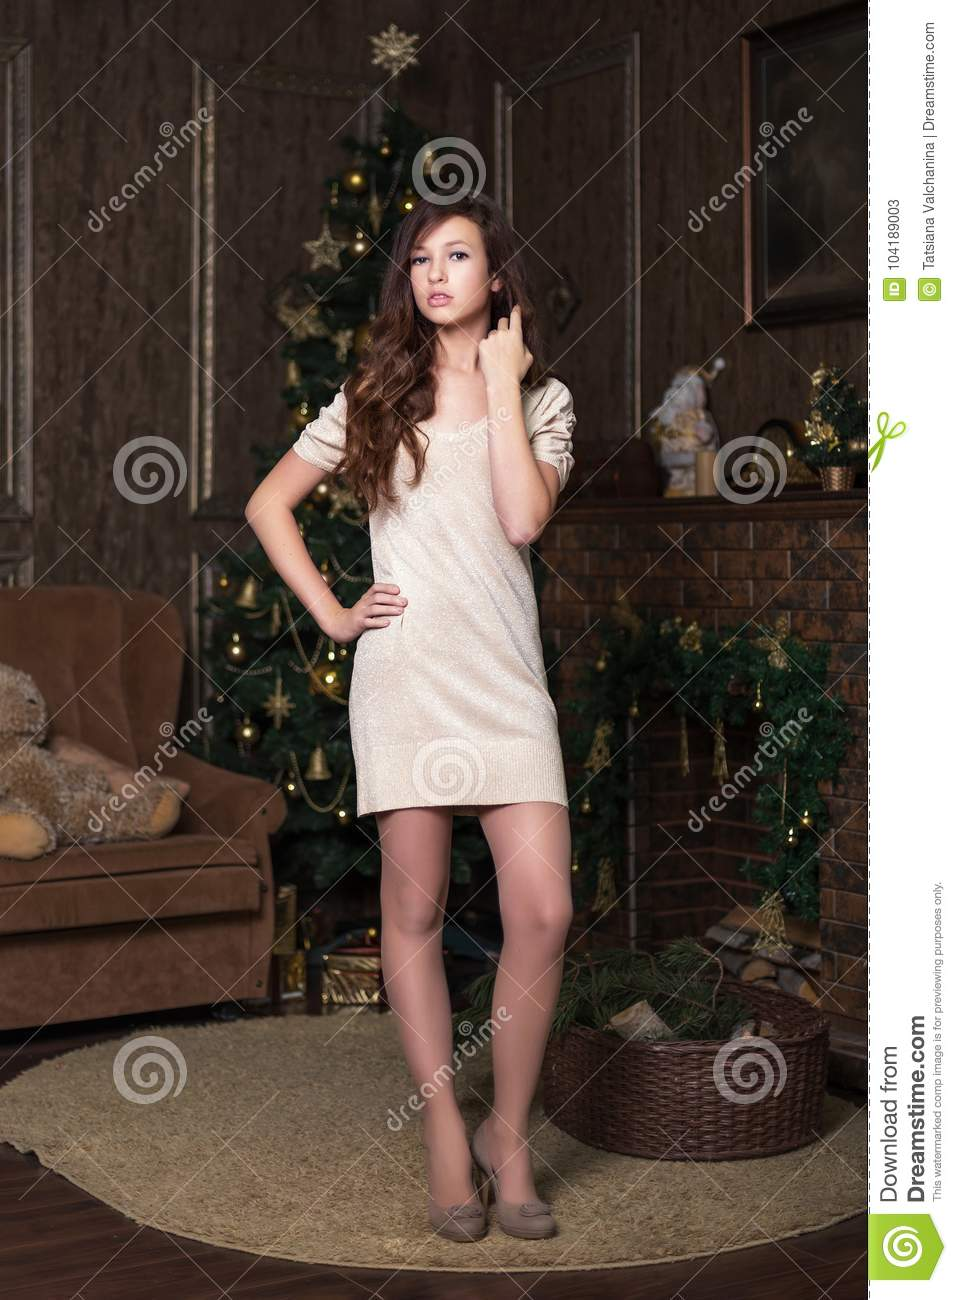 Girl model shows poses on photo shoot in studio with christmas tree